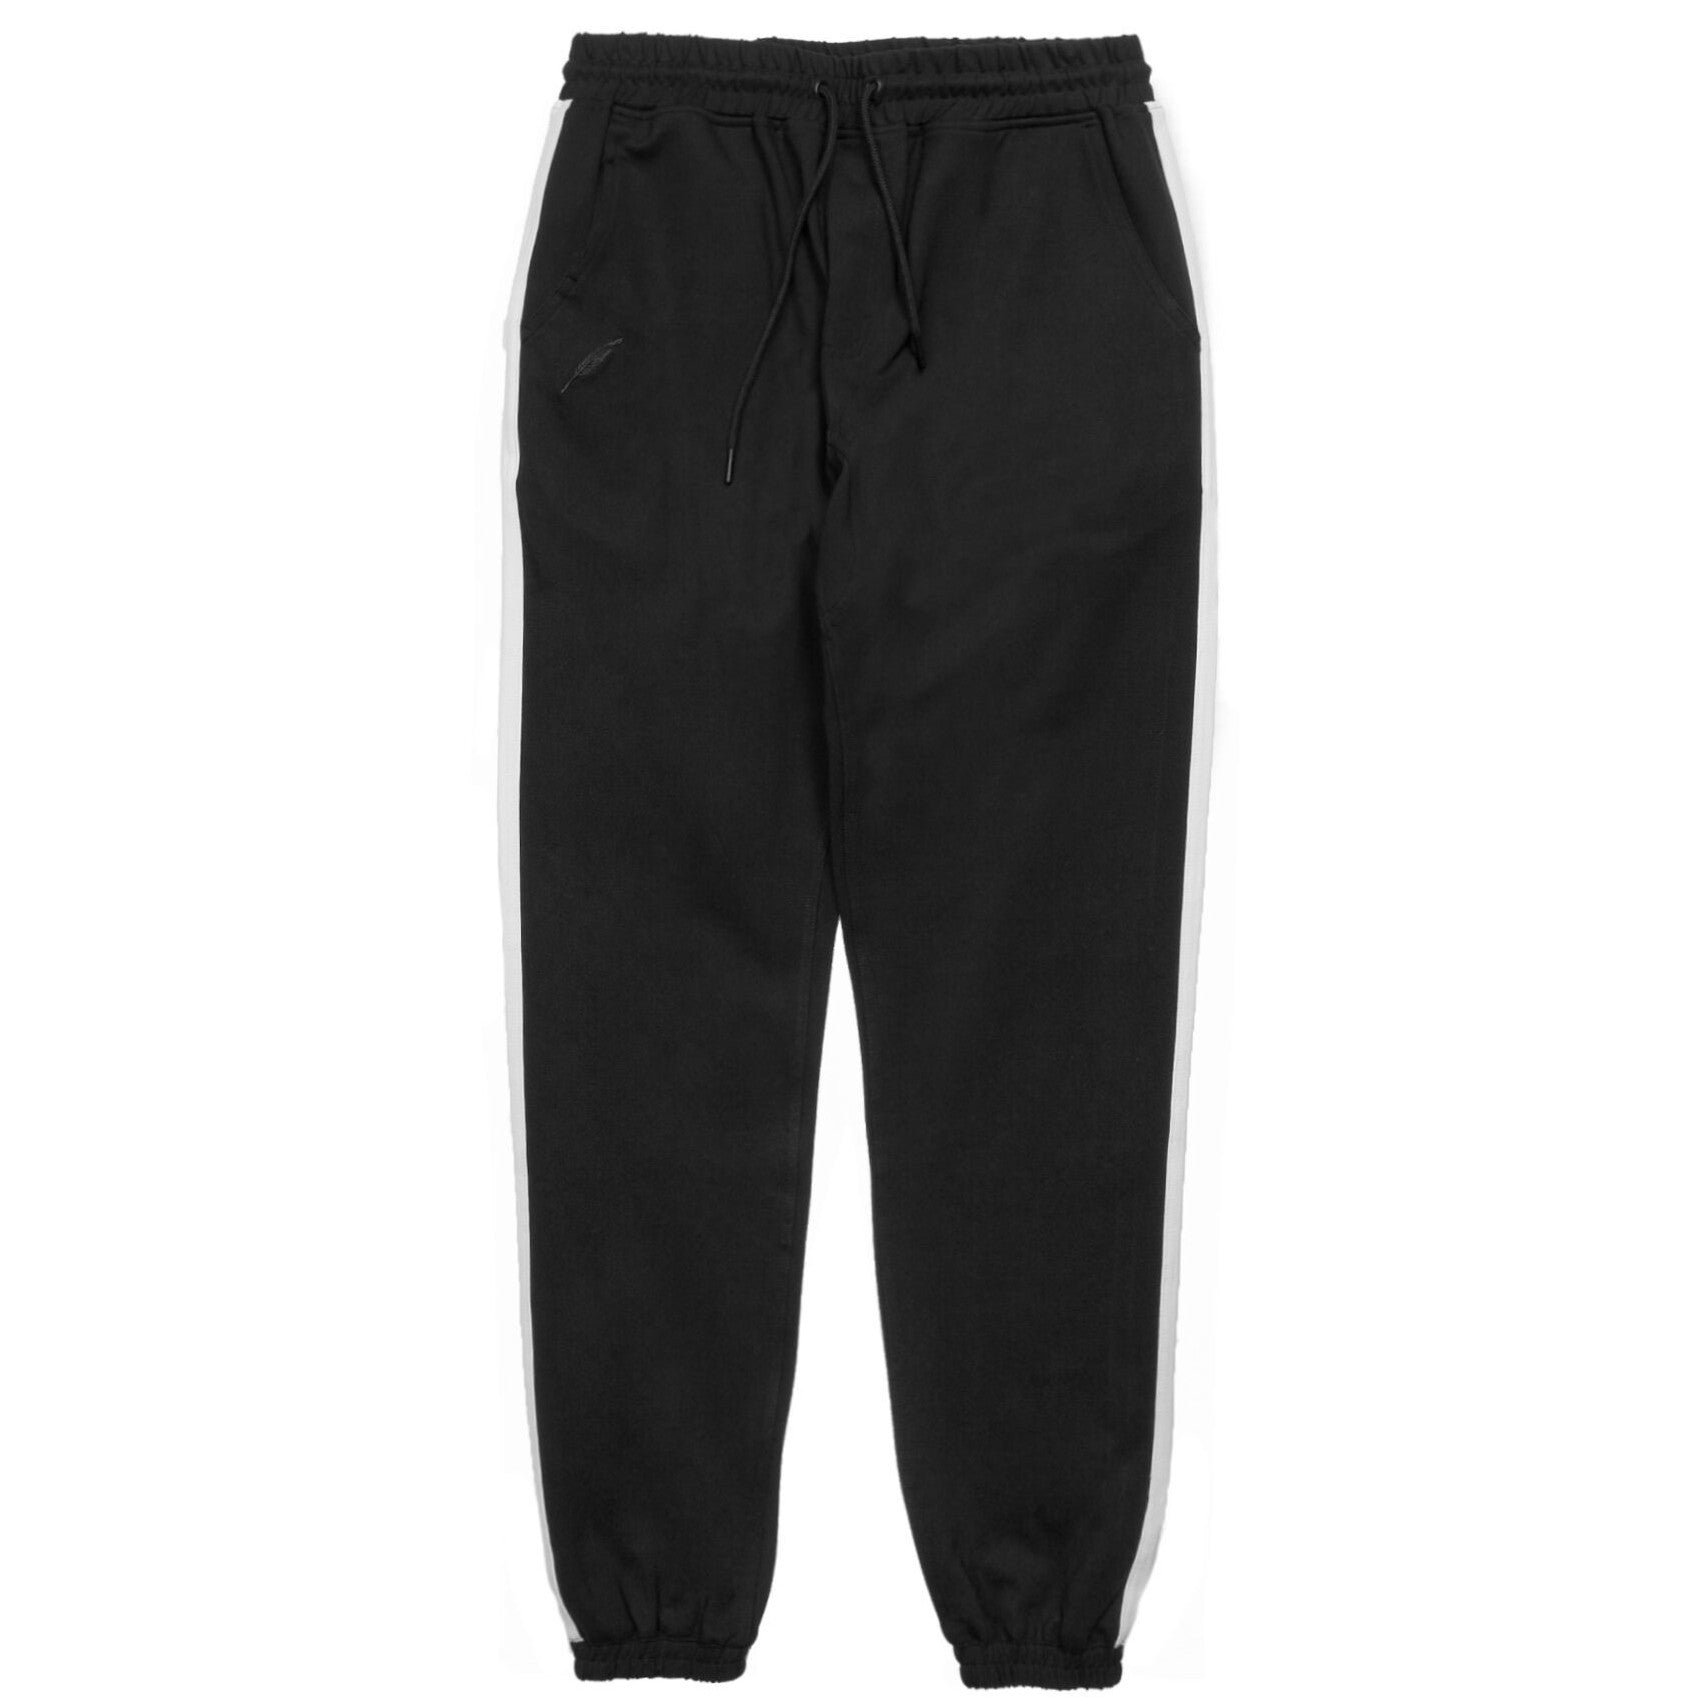 Wyatt Track Joggers (Black) - Publish